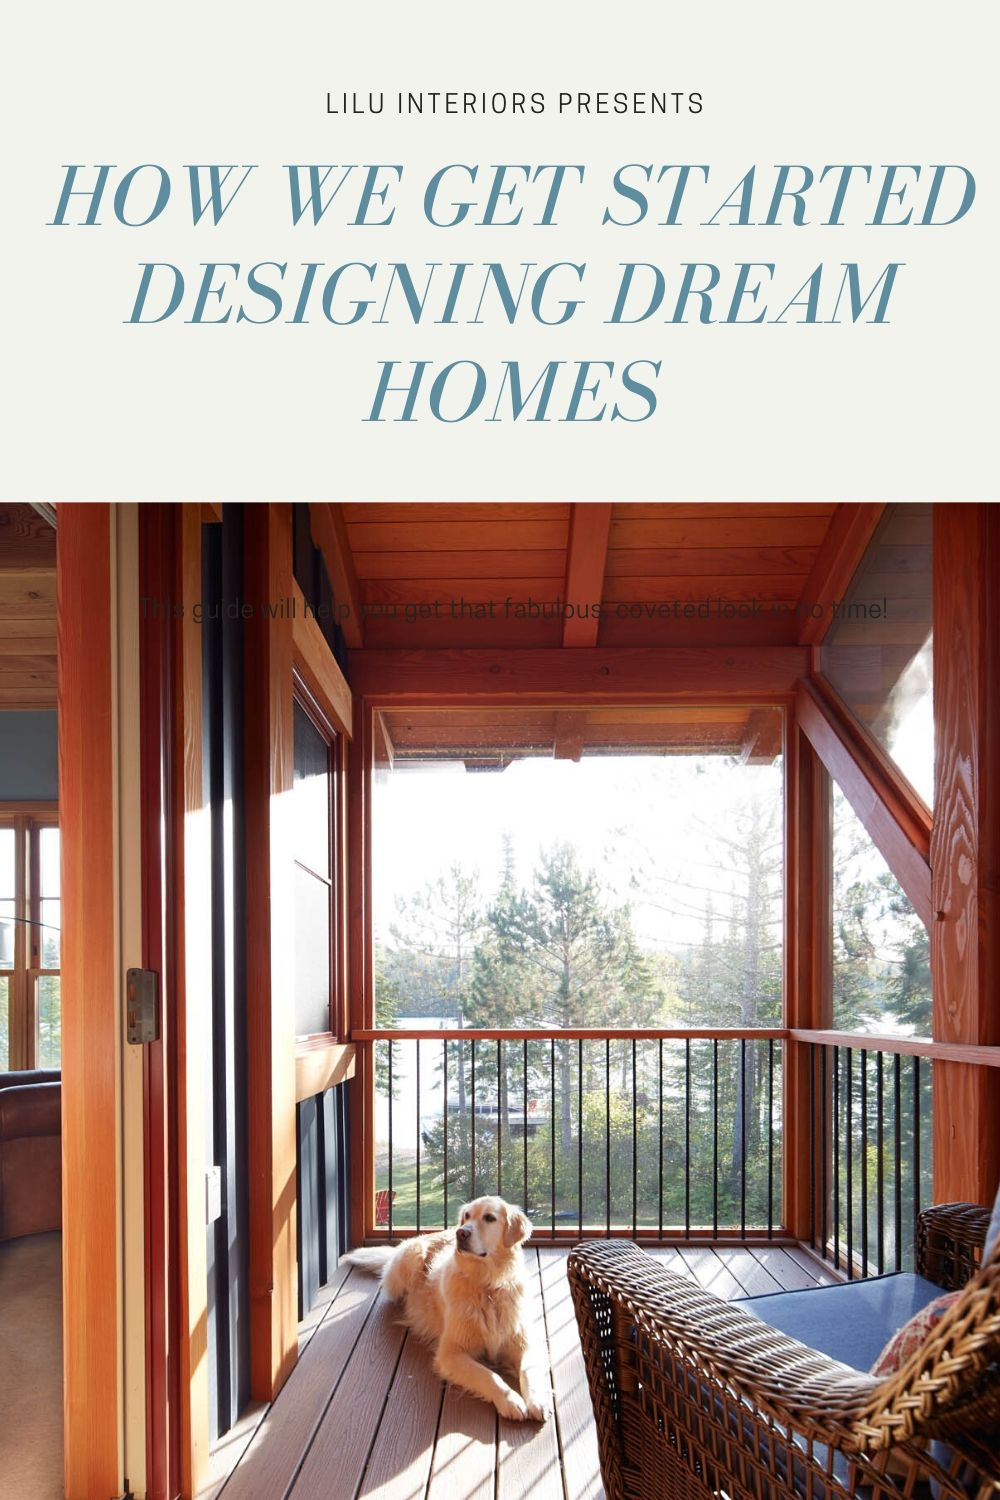 design-process-how-to-design-dream-home-interior-designer-55405.jpeg